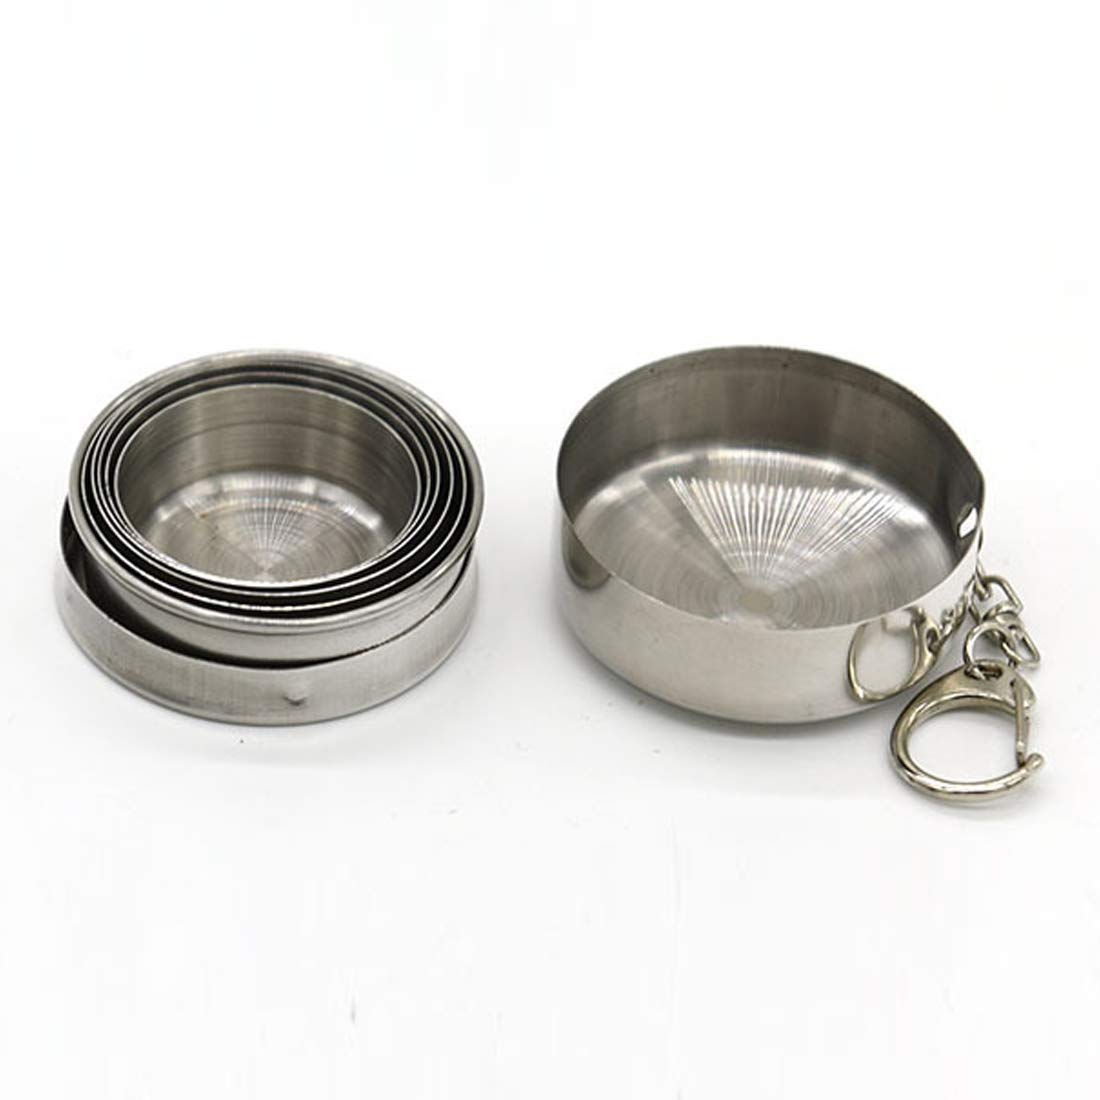 BecautyCYDZ 6 Oz Folding Collapsible Stainless Steel Cup Outdoor Travel Camping Portable New Hot